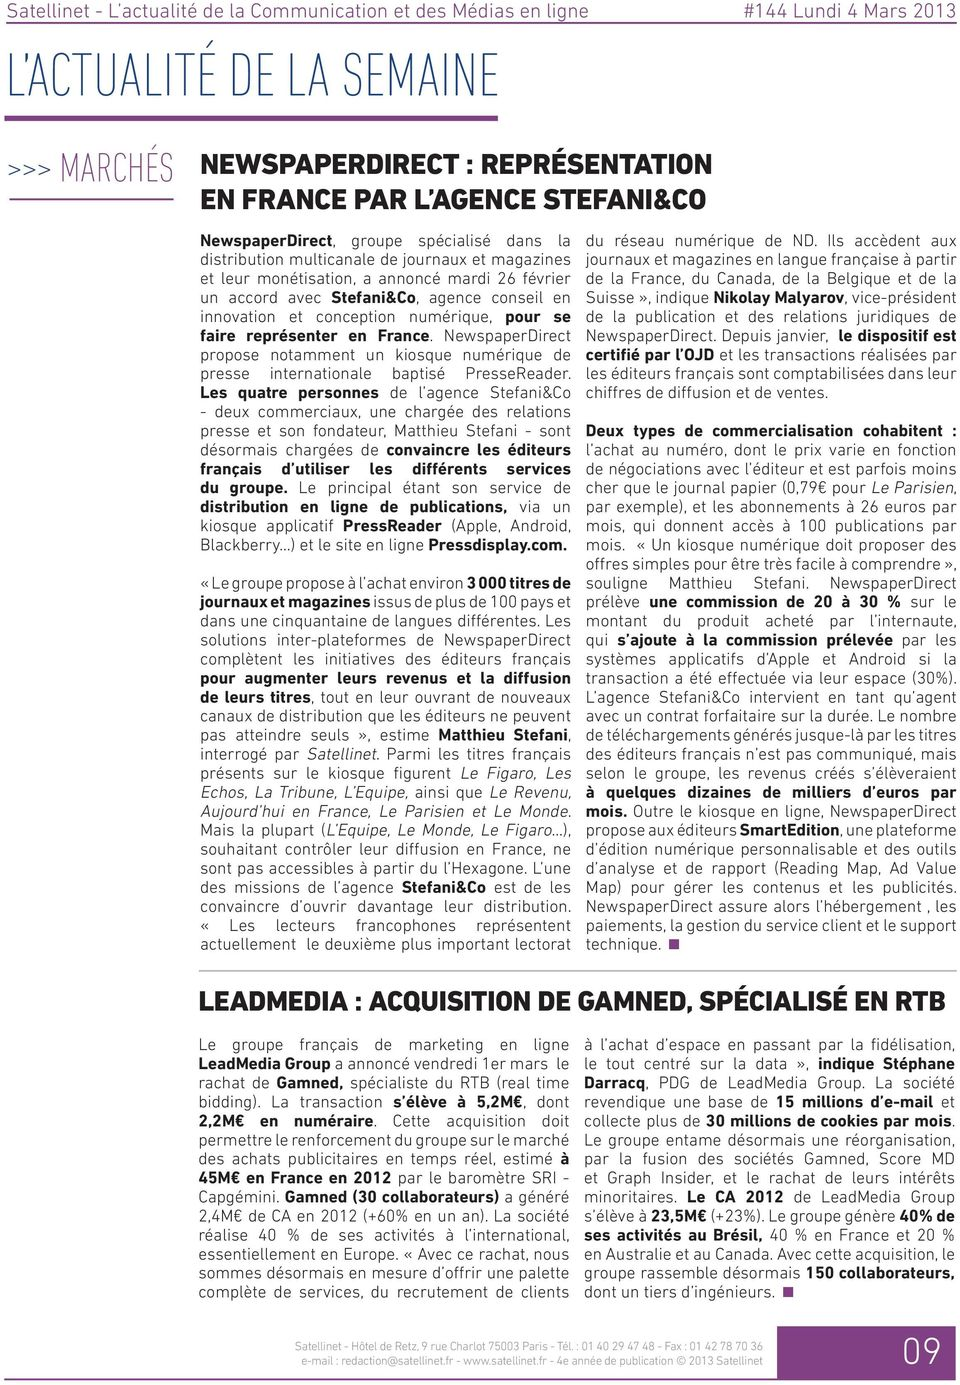 NewspaperDirect propose notamment un kiosque numérique de presse internationale baptisé PresseReader.